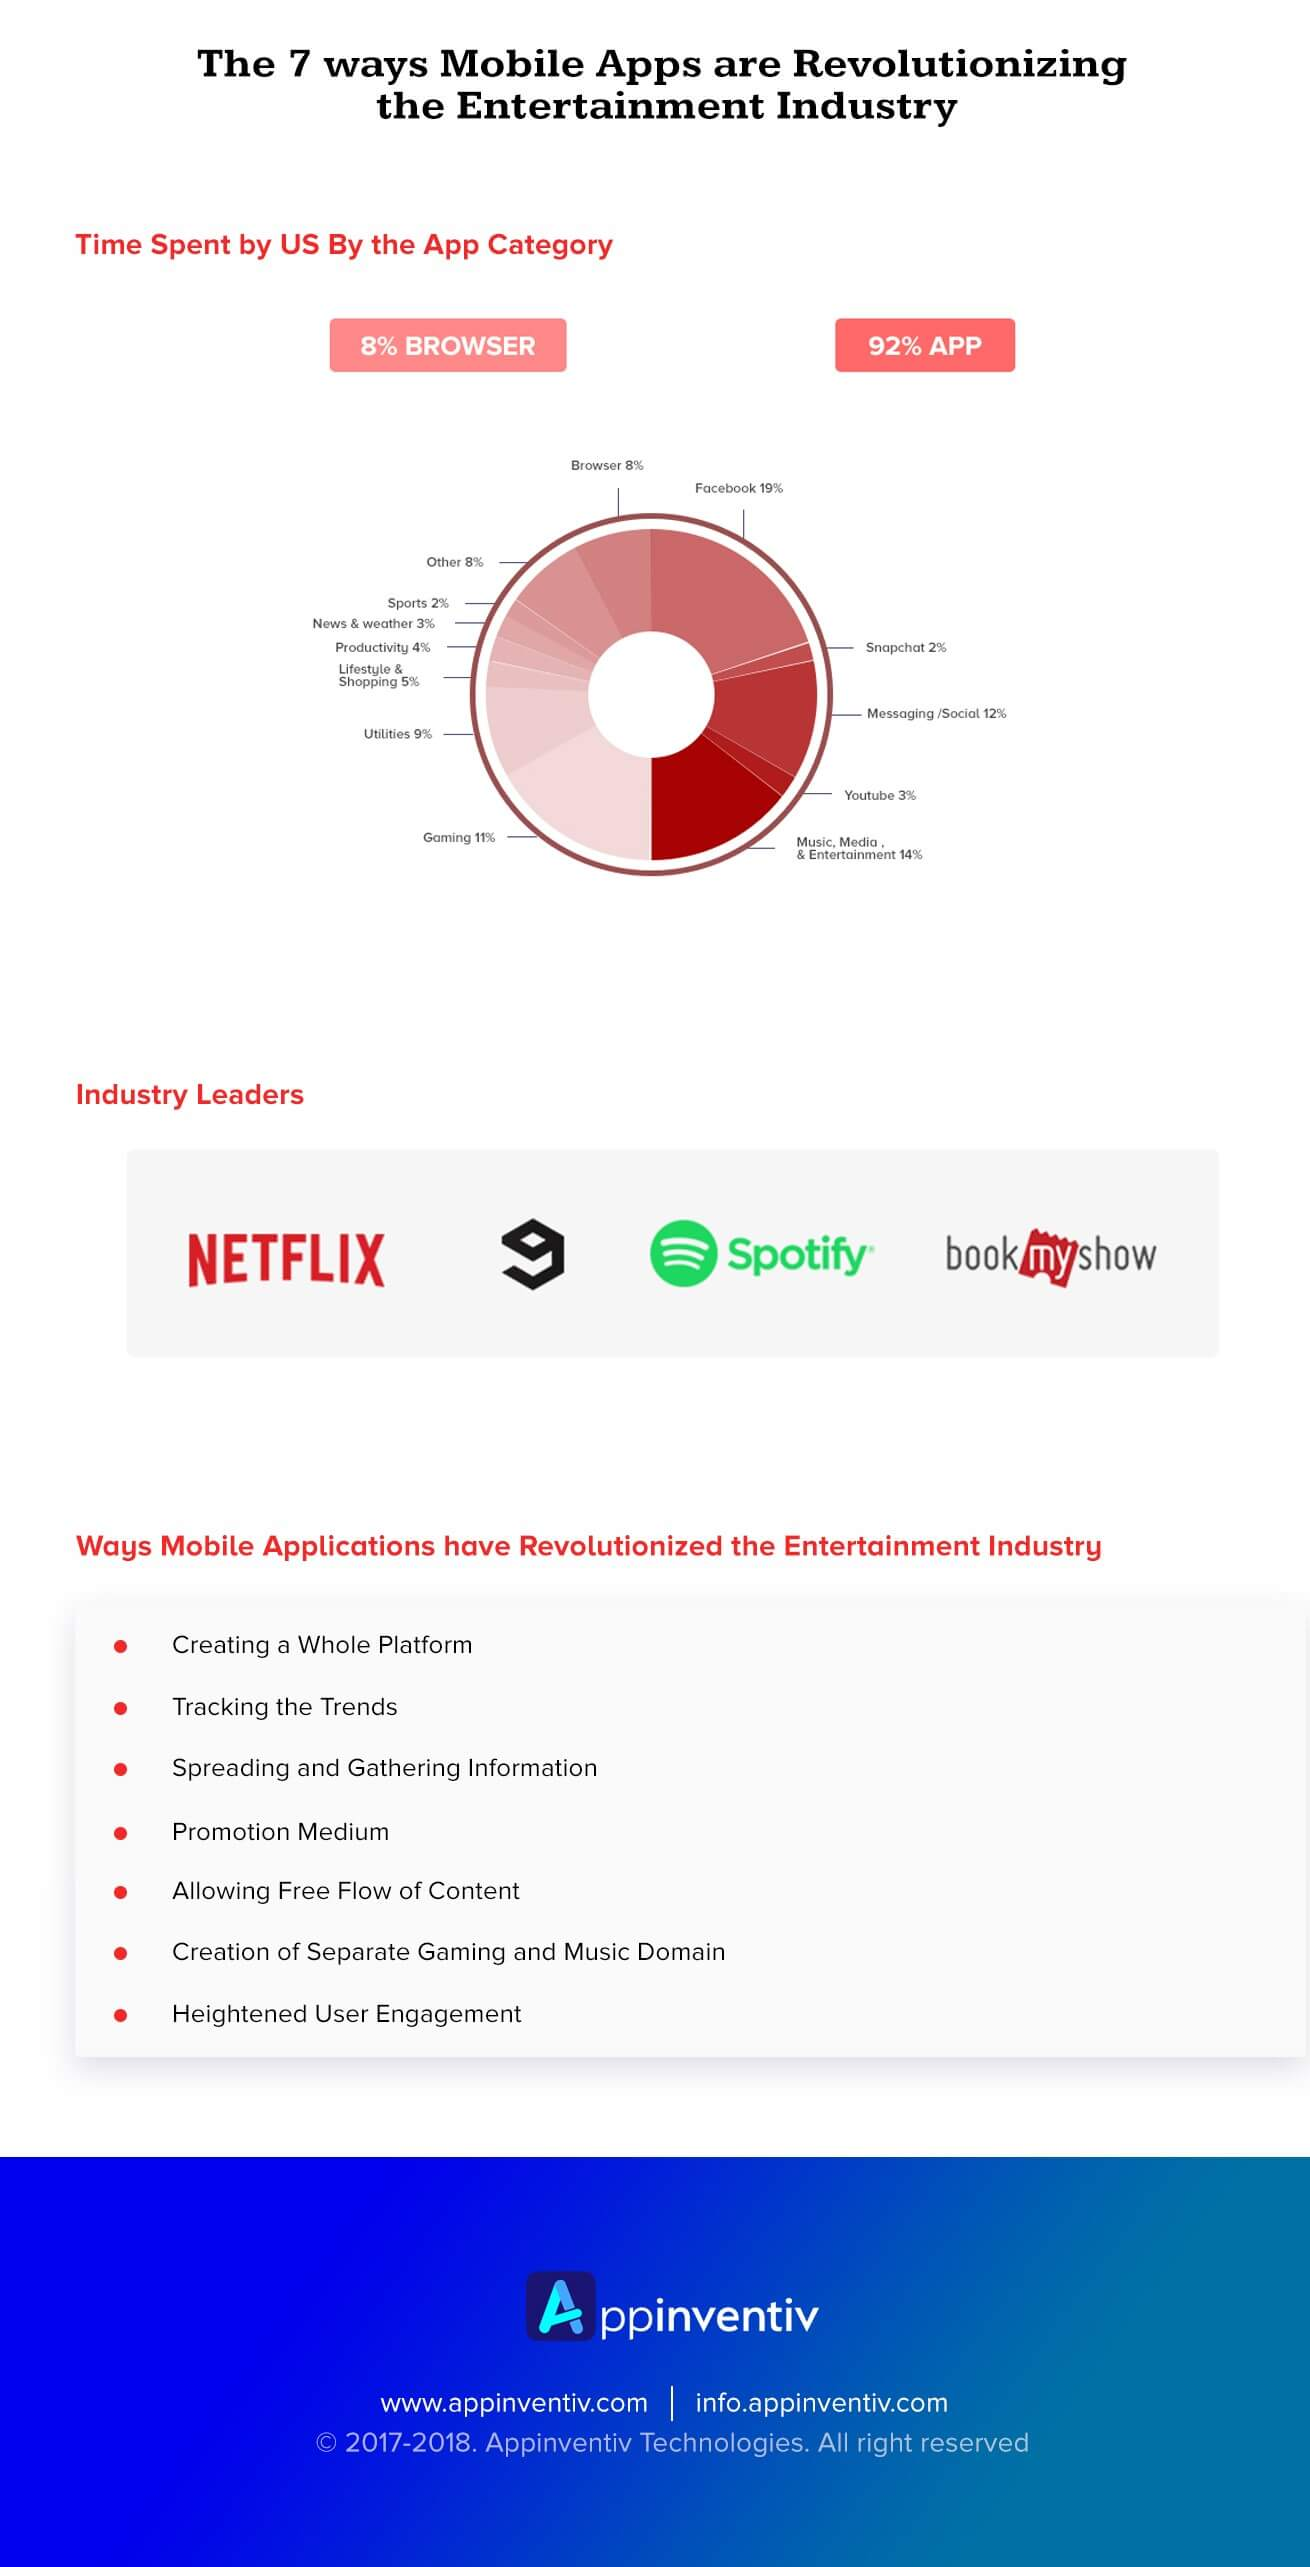 Mobile Apps are Revolutionizing the Entertainment Industry Infographic